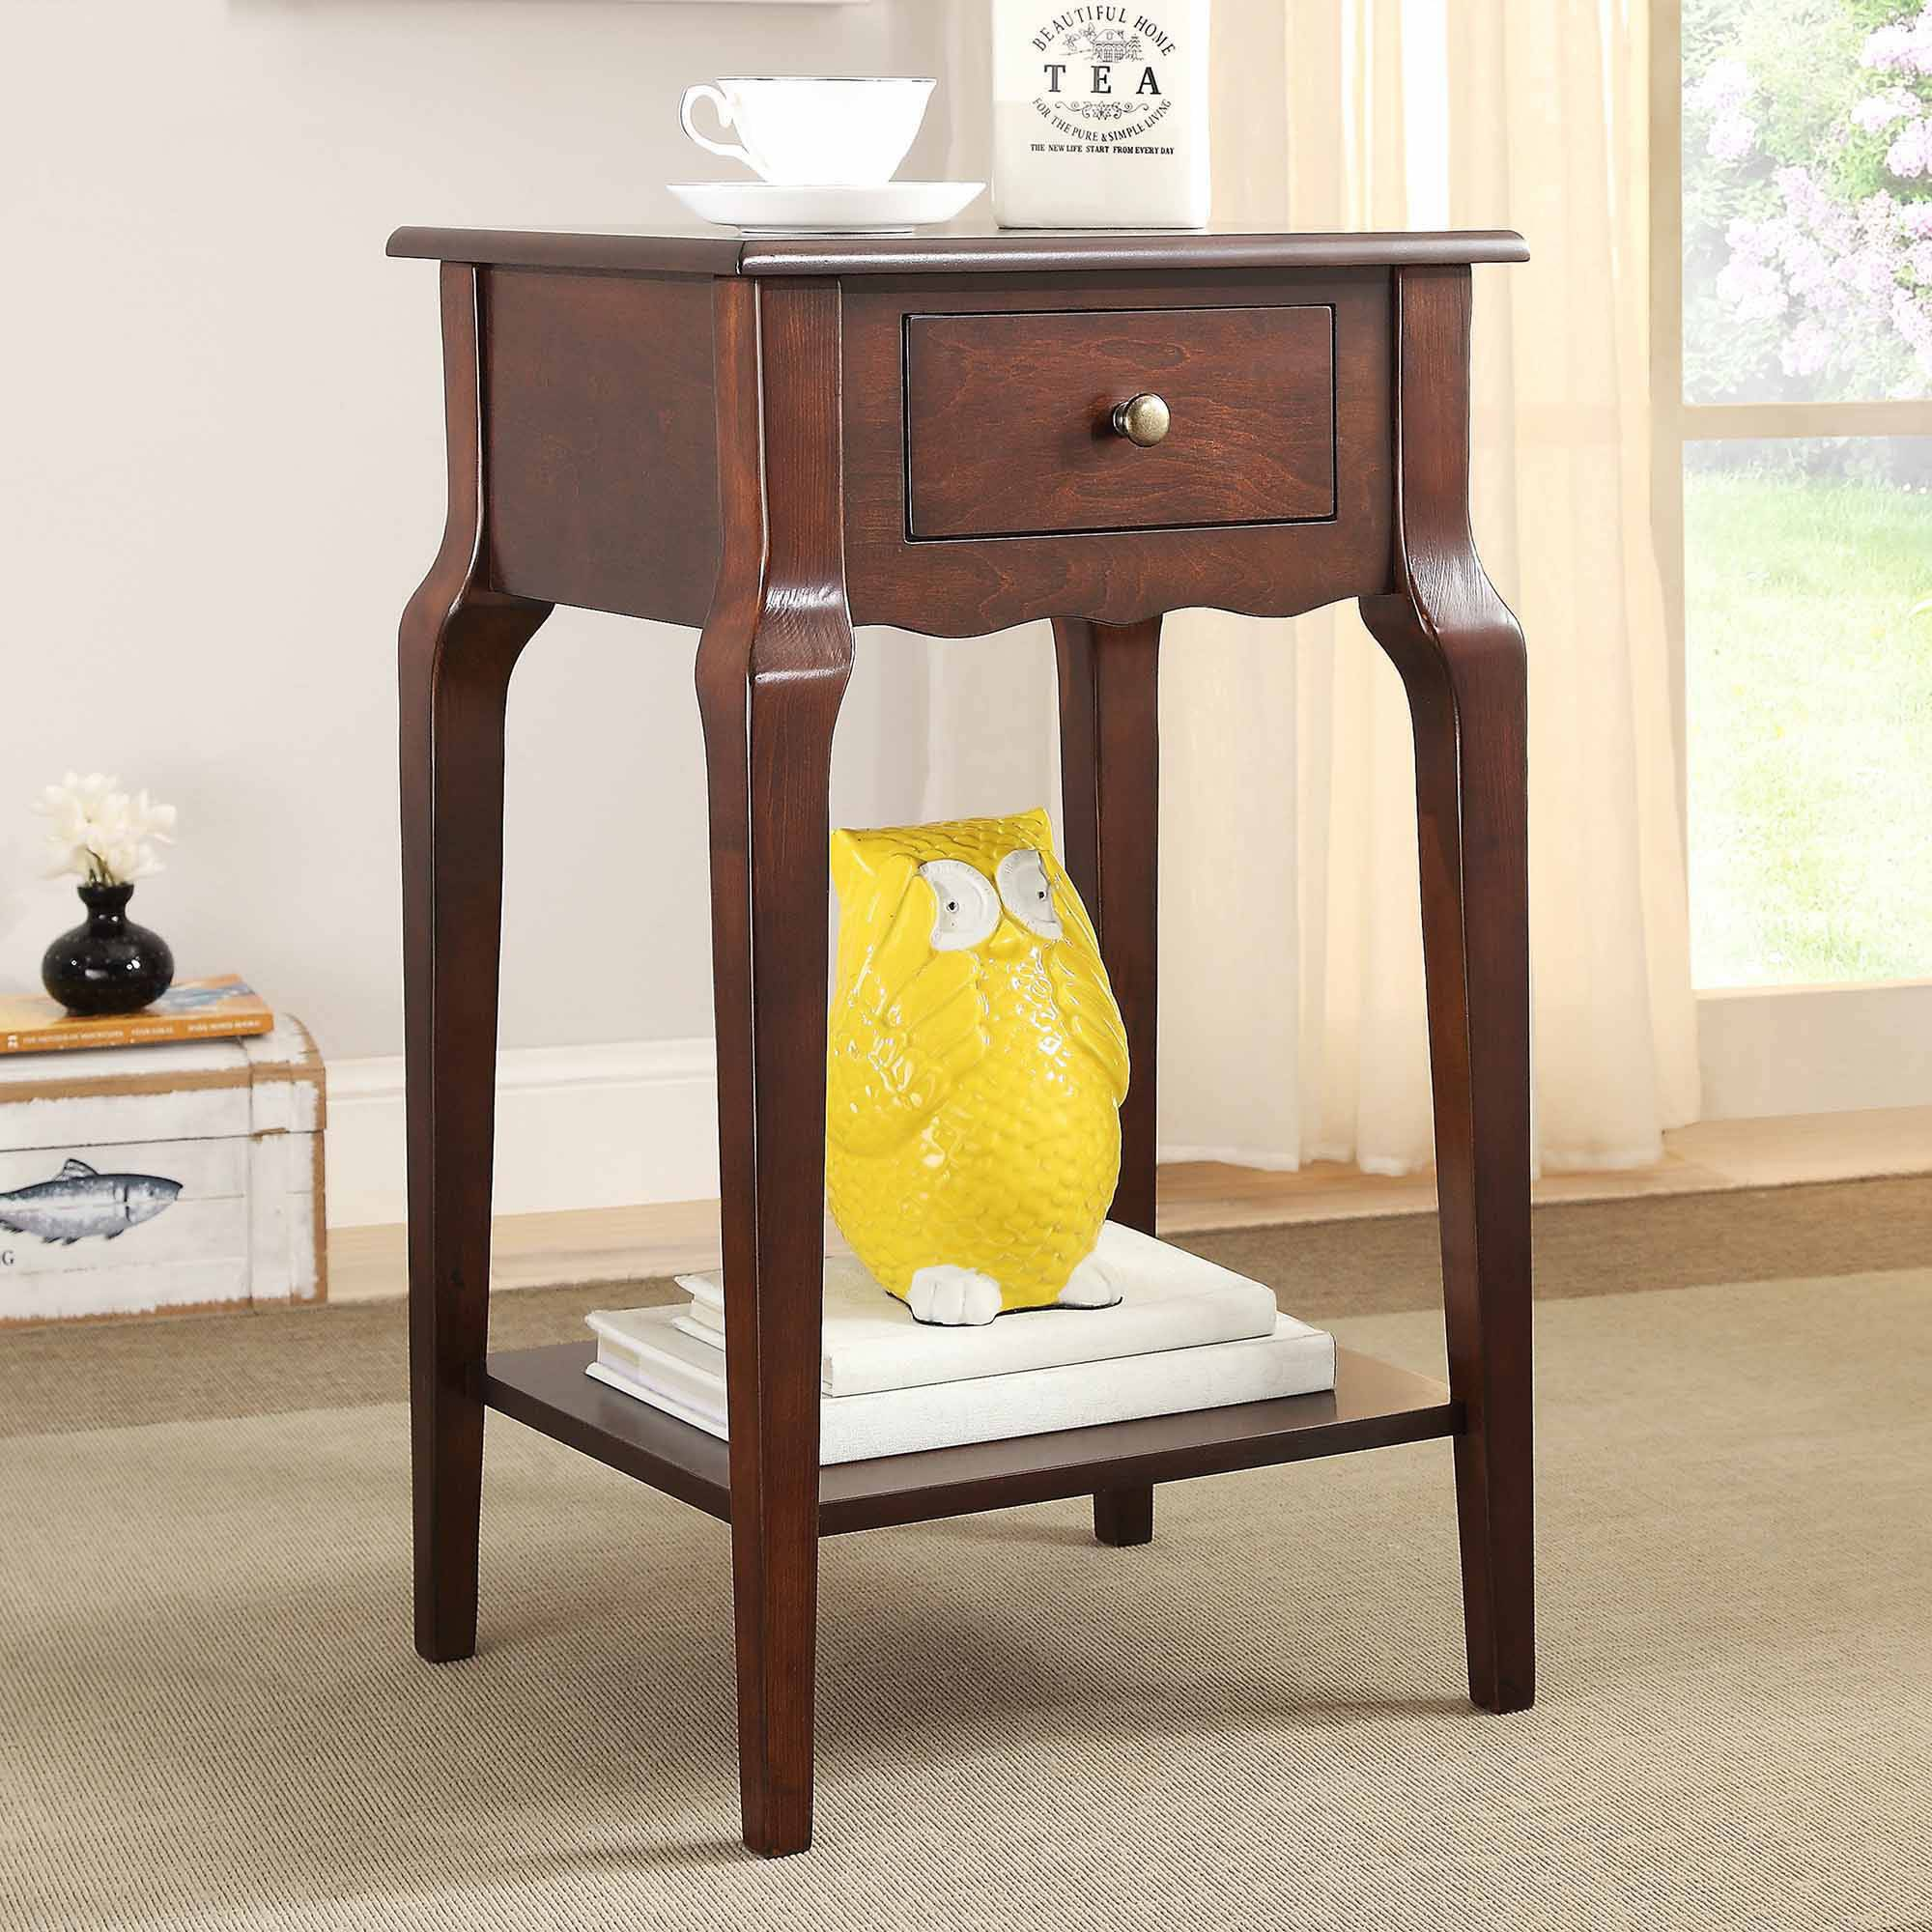 Weston Home Catalpa Wood End Table with Drawer, Multiple Finishes